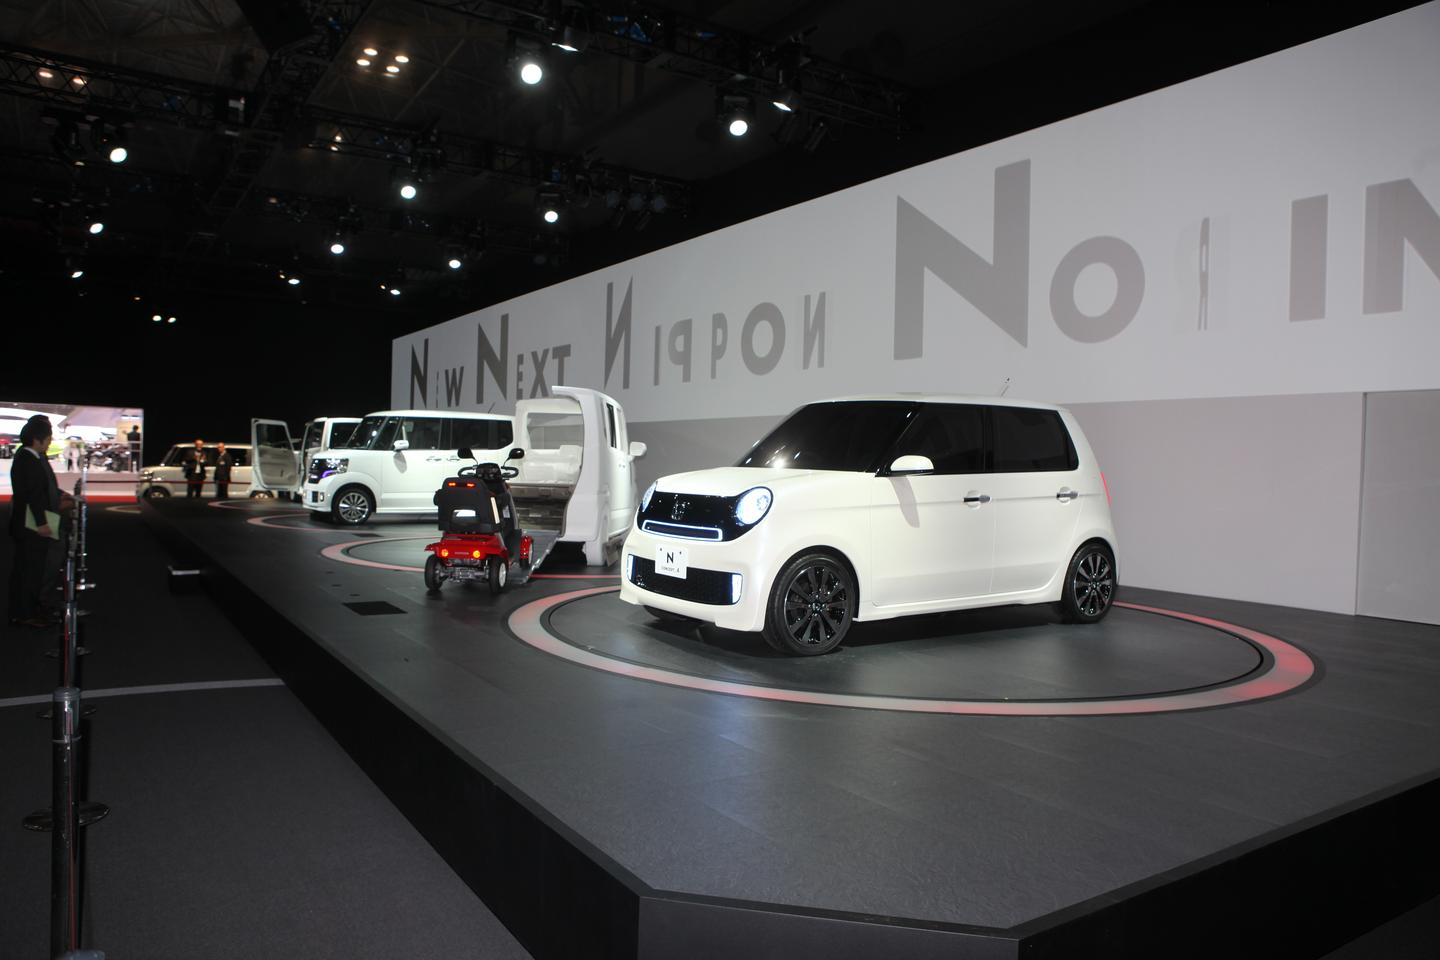 Honda's new N Box platform was purpose built for Japanese domestic market Kei car regulations - the idea was to create a comfortable, spacious passenger environment for four adults using the available real estate of a minicar platform.